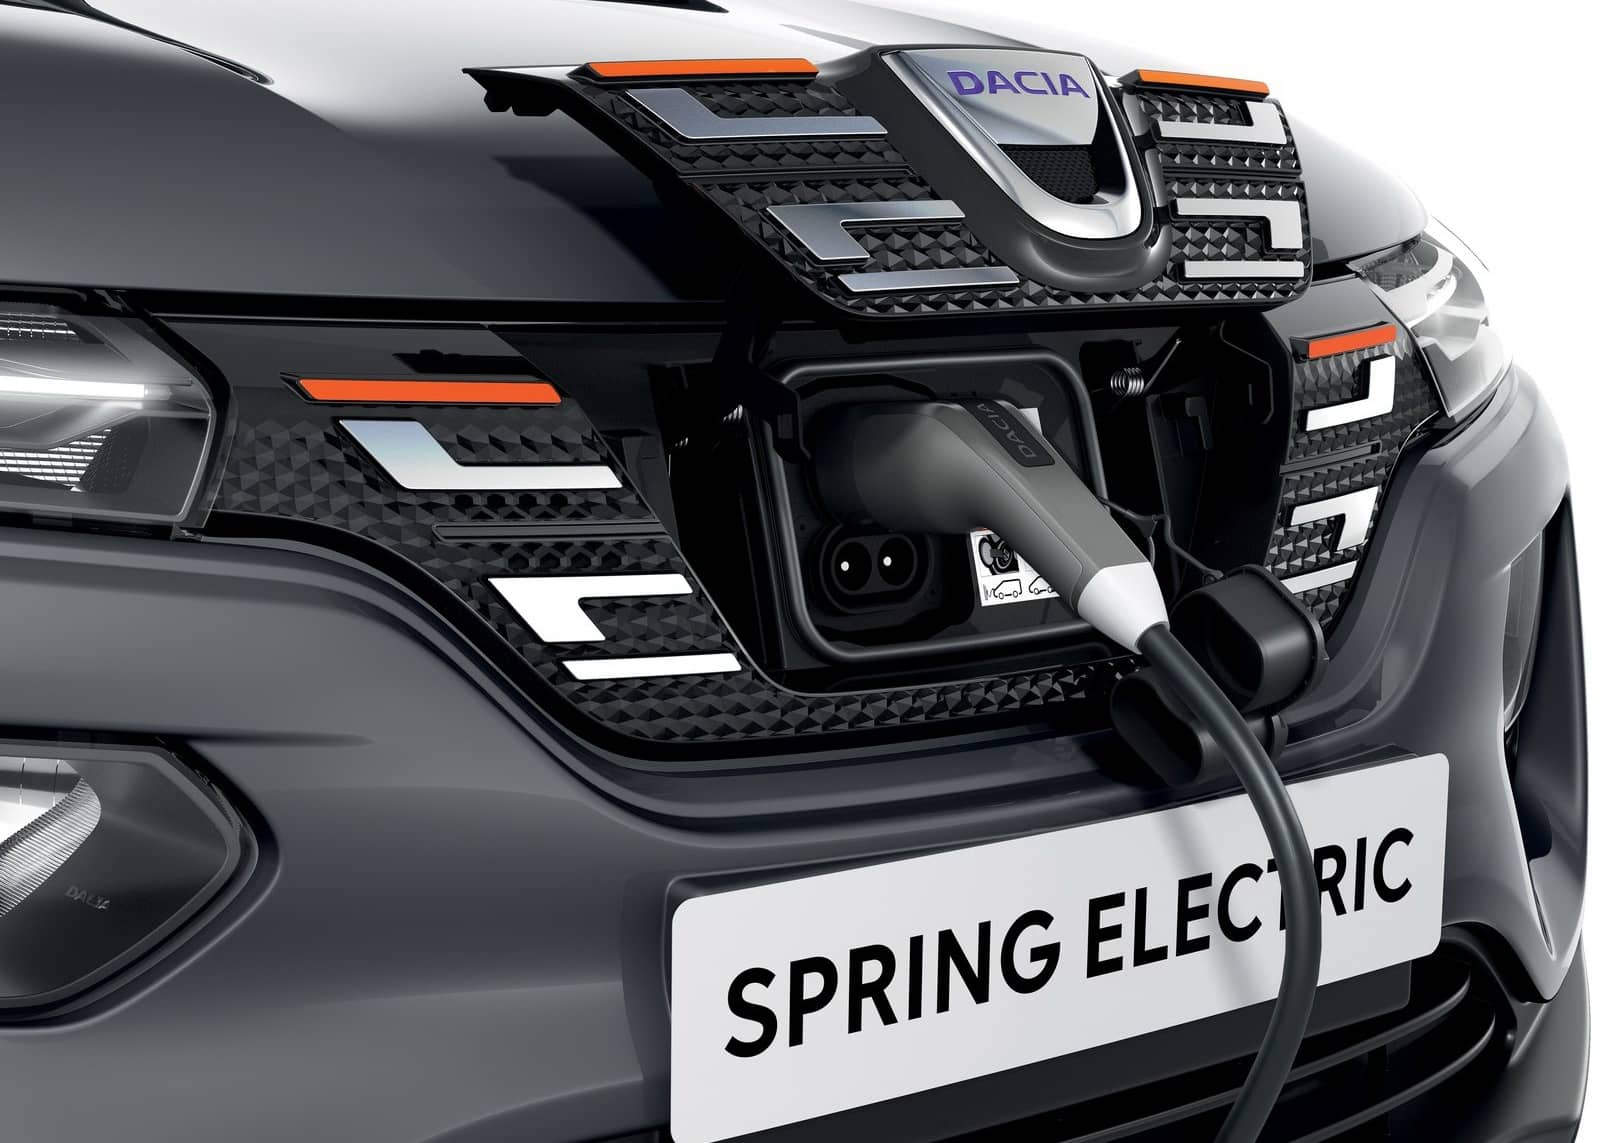 Dacia-Spring_Electric-2022-1600-2f